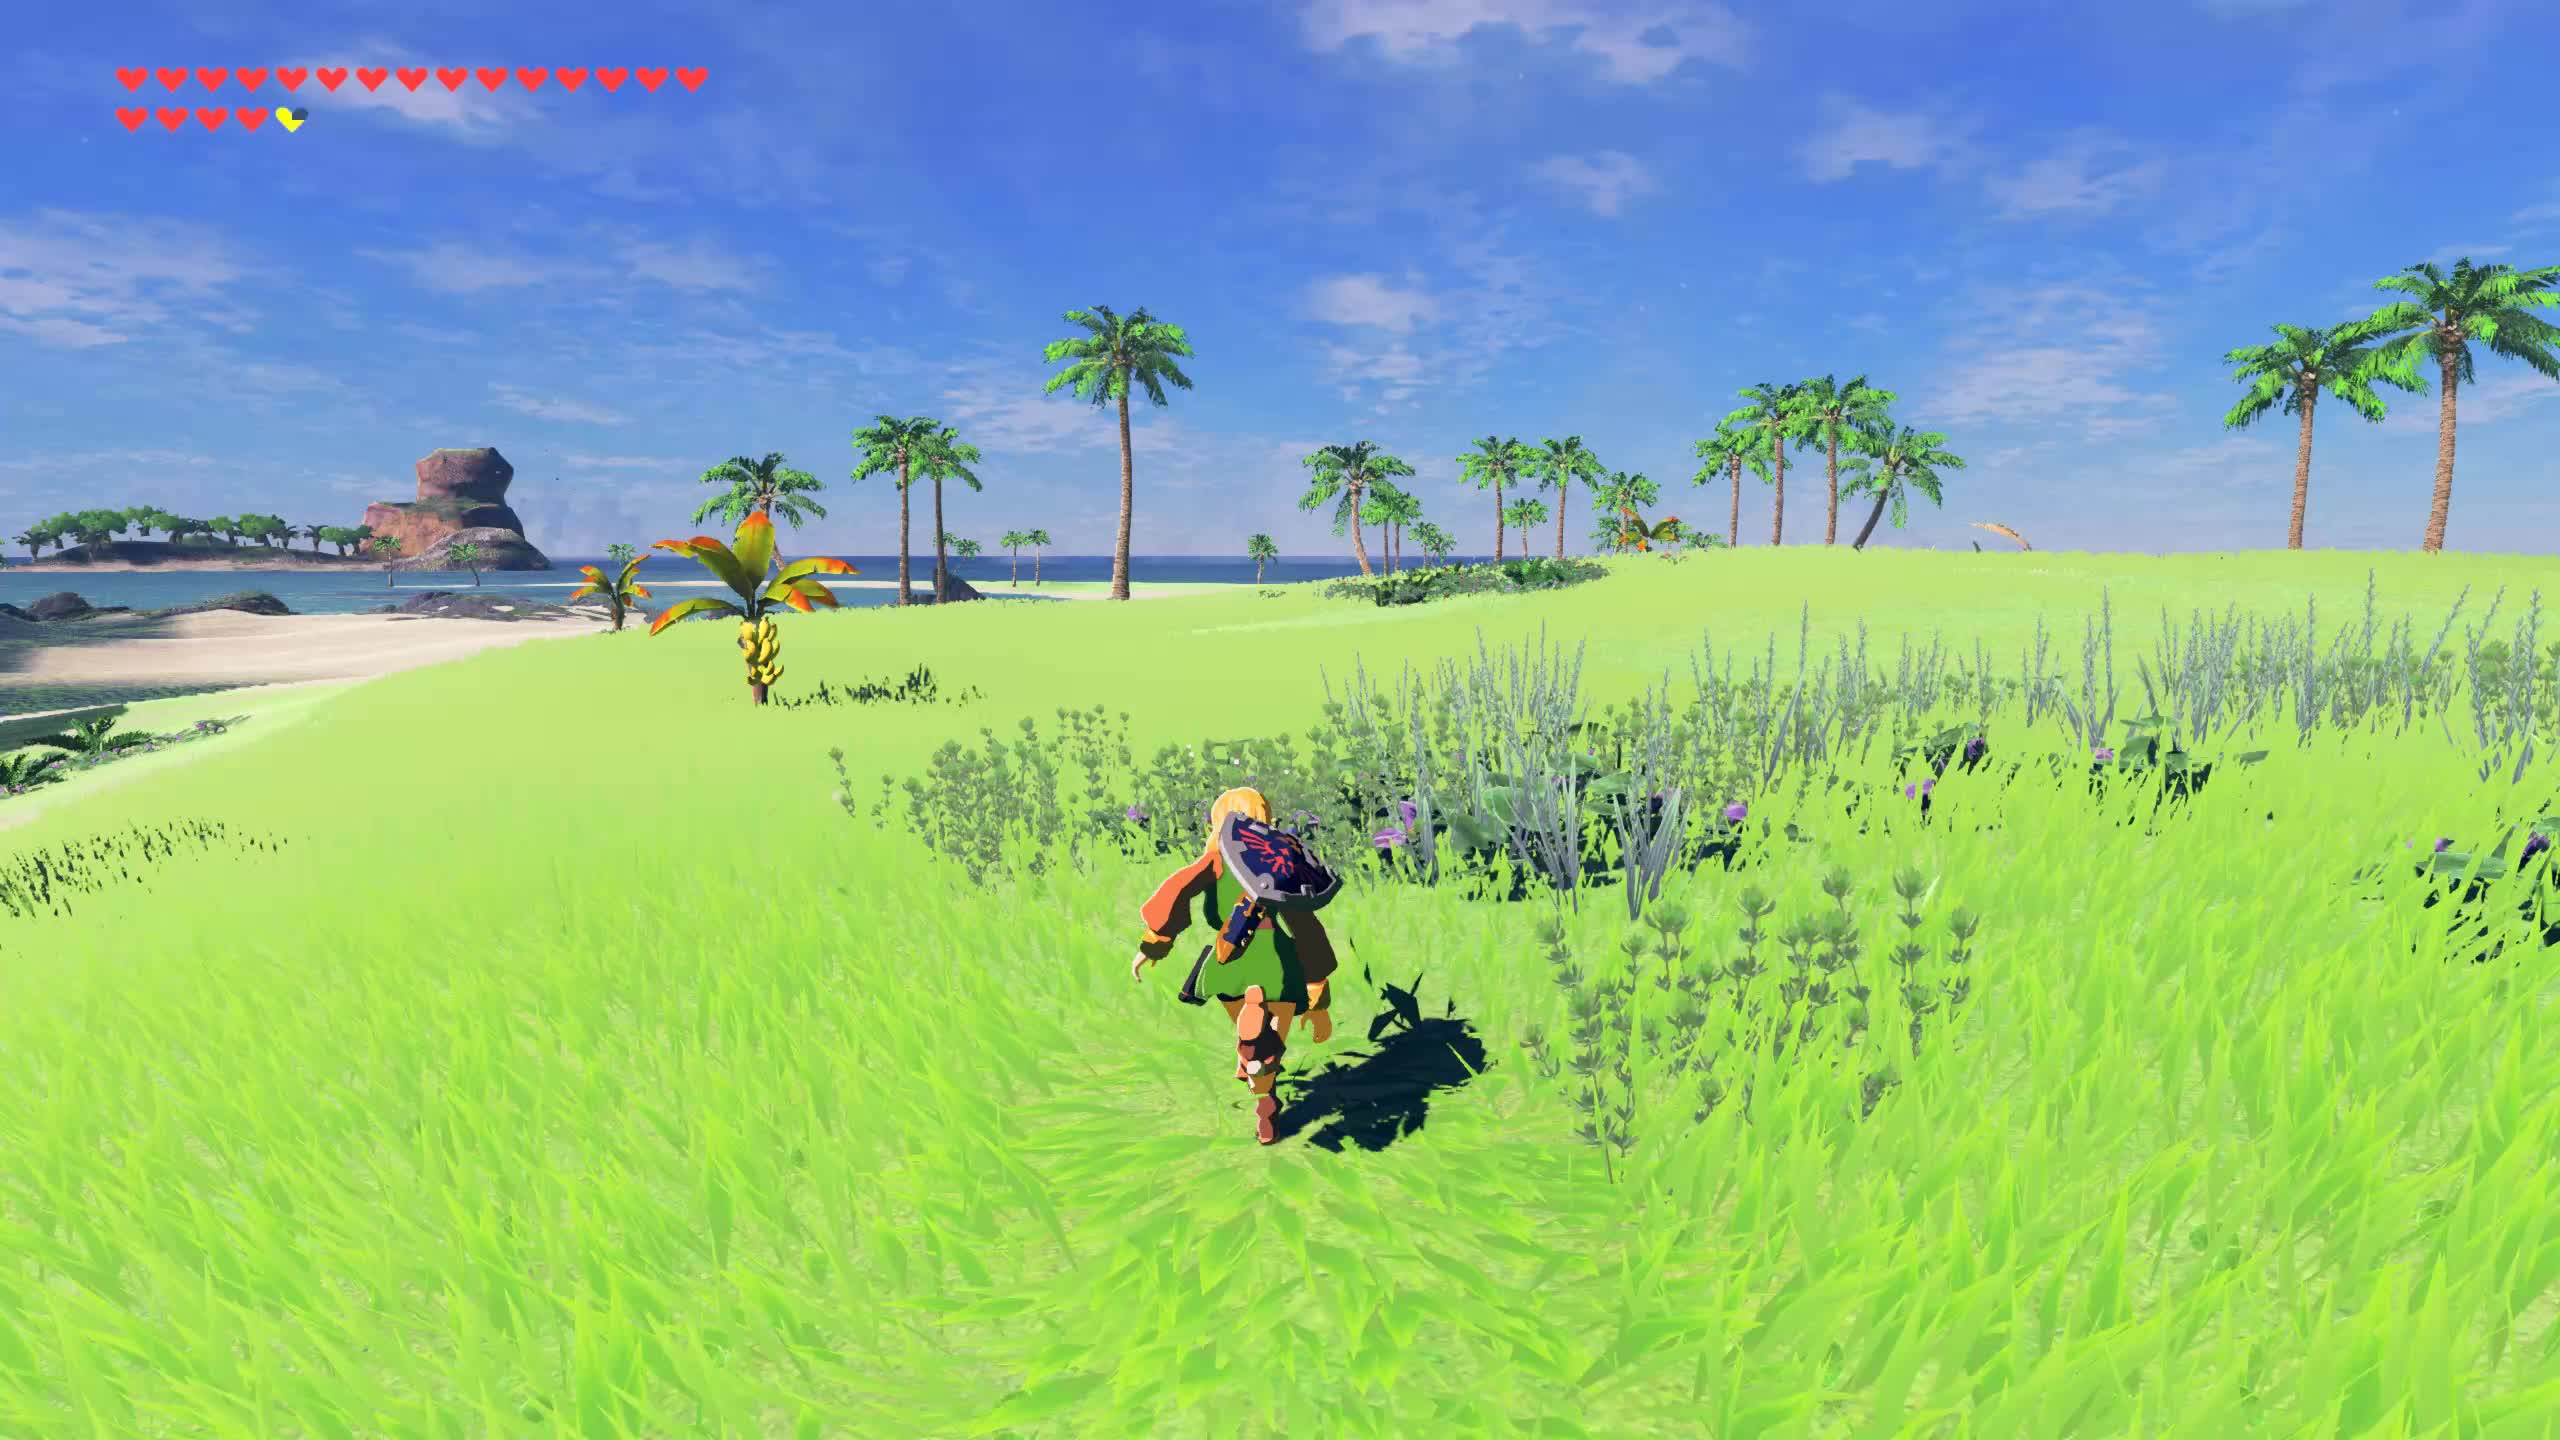 Cemu Botw Gifs Search | Search & Share on Homdor